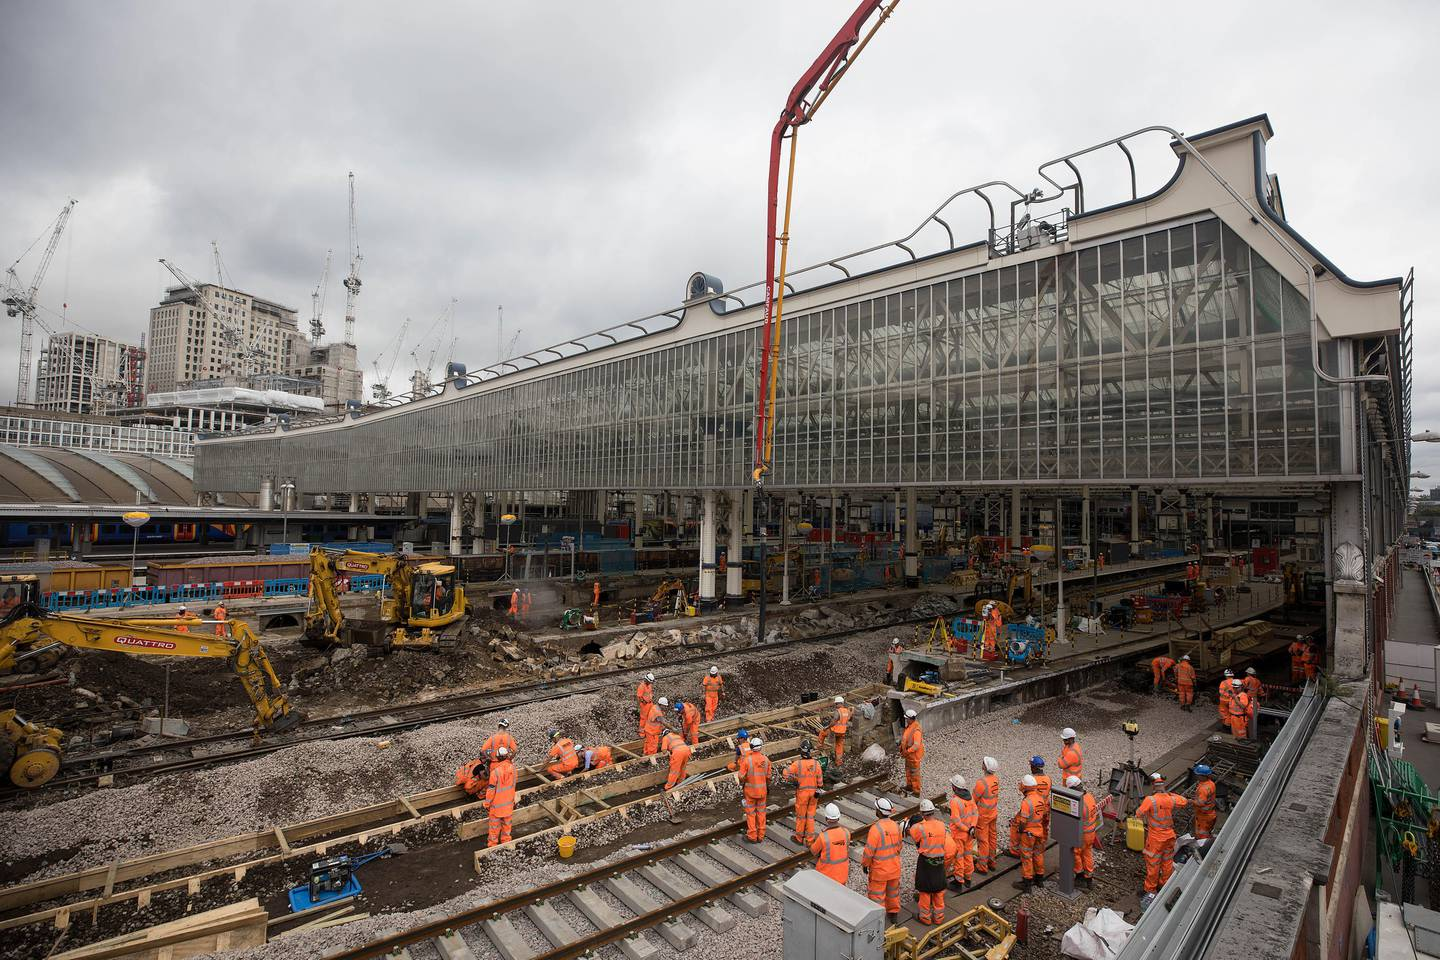 Construction workers build new track during renovation works aiming at boosting peak-time capacity 30 percent at London Waterloo train station in London, U.K., on Monday, Aug. 7, 2017. The 800 million-pound ($1 billion) renovation at Waterloo, which will open four platforms mothballed since Channel Tunnel express trains switched to St. Pancras station and extend four more, should deliver a service boost matching the London Bridge project but without the upheaval, Stagecoach Group Plc Chief Executive Officer Martin Griffiths said in July. Photographer: Simon Dawson/Bloomberg